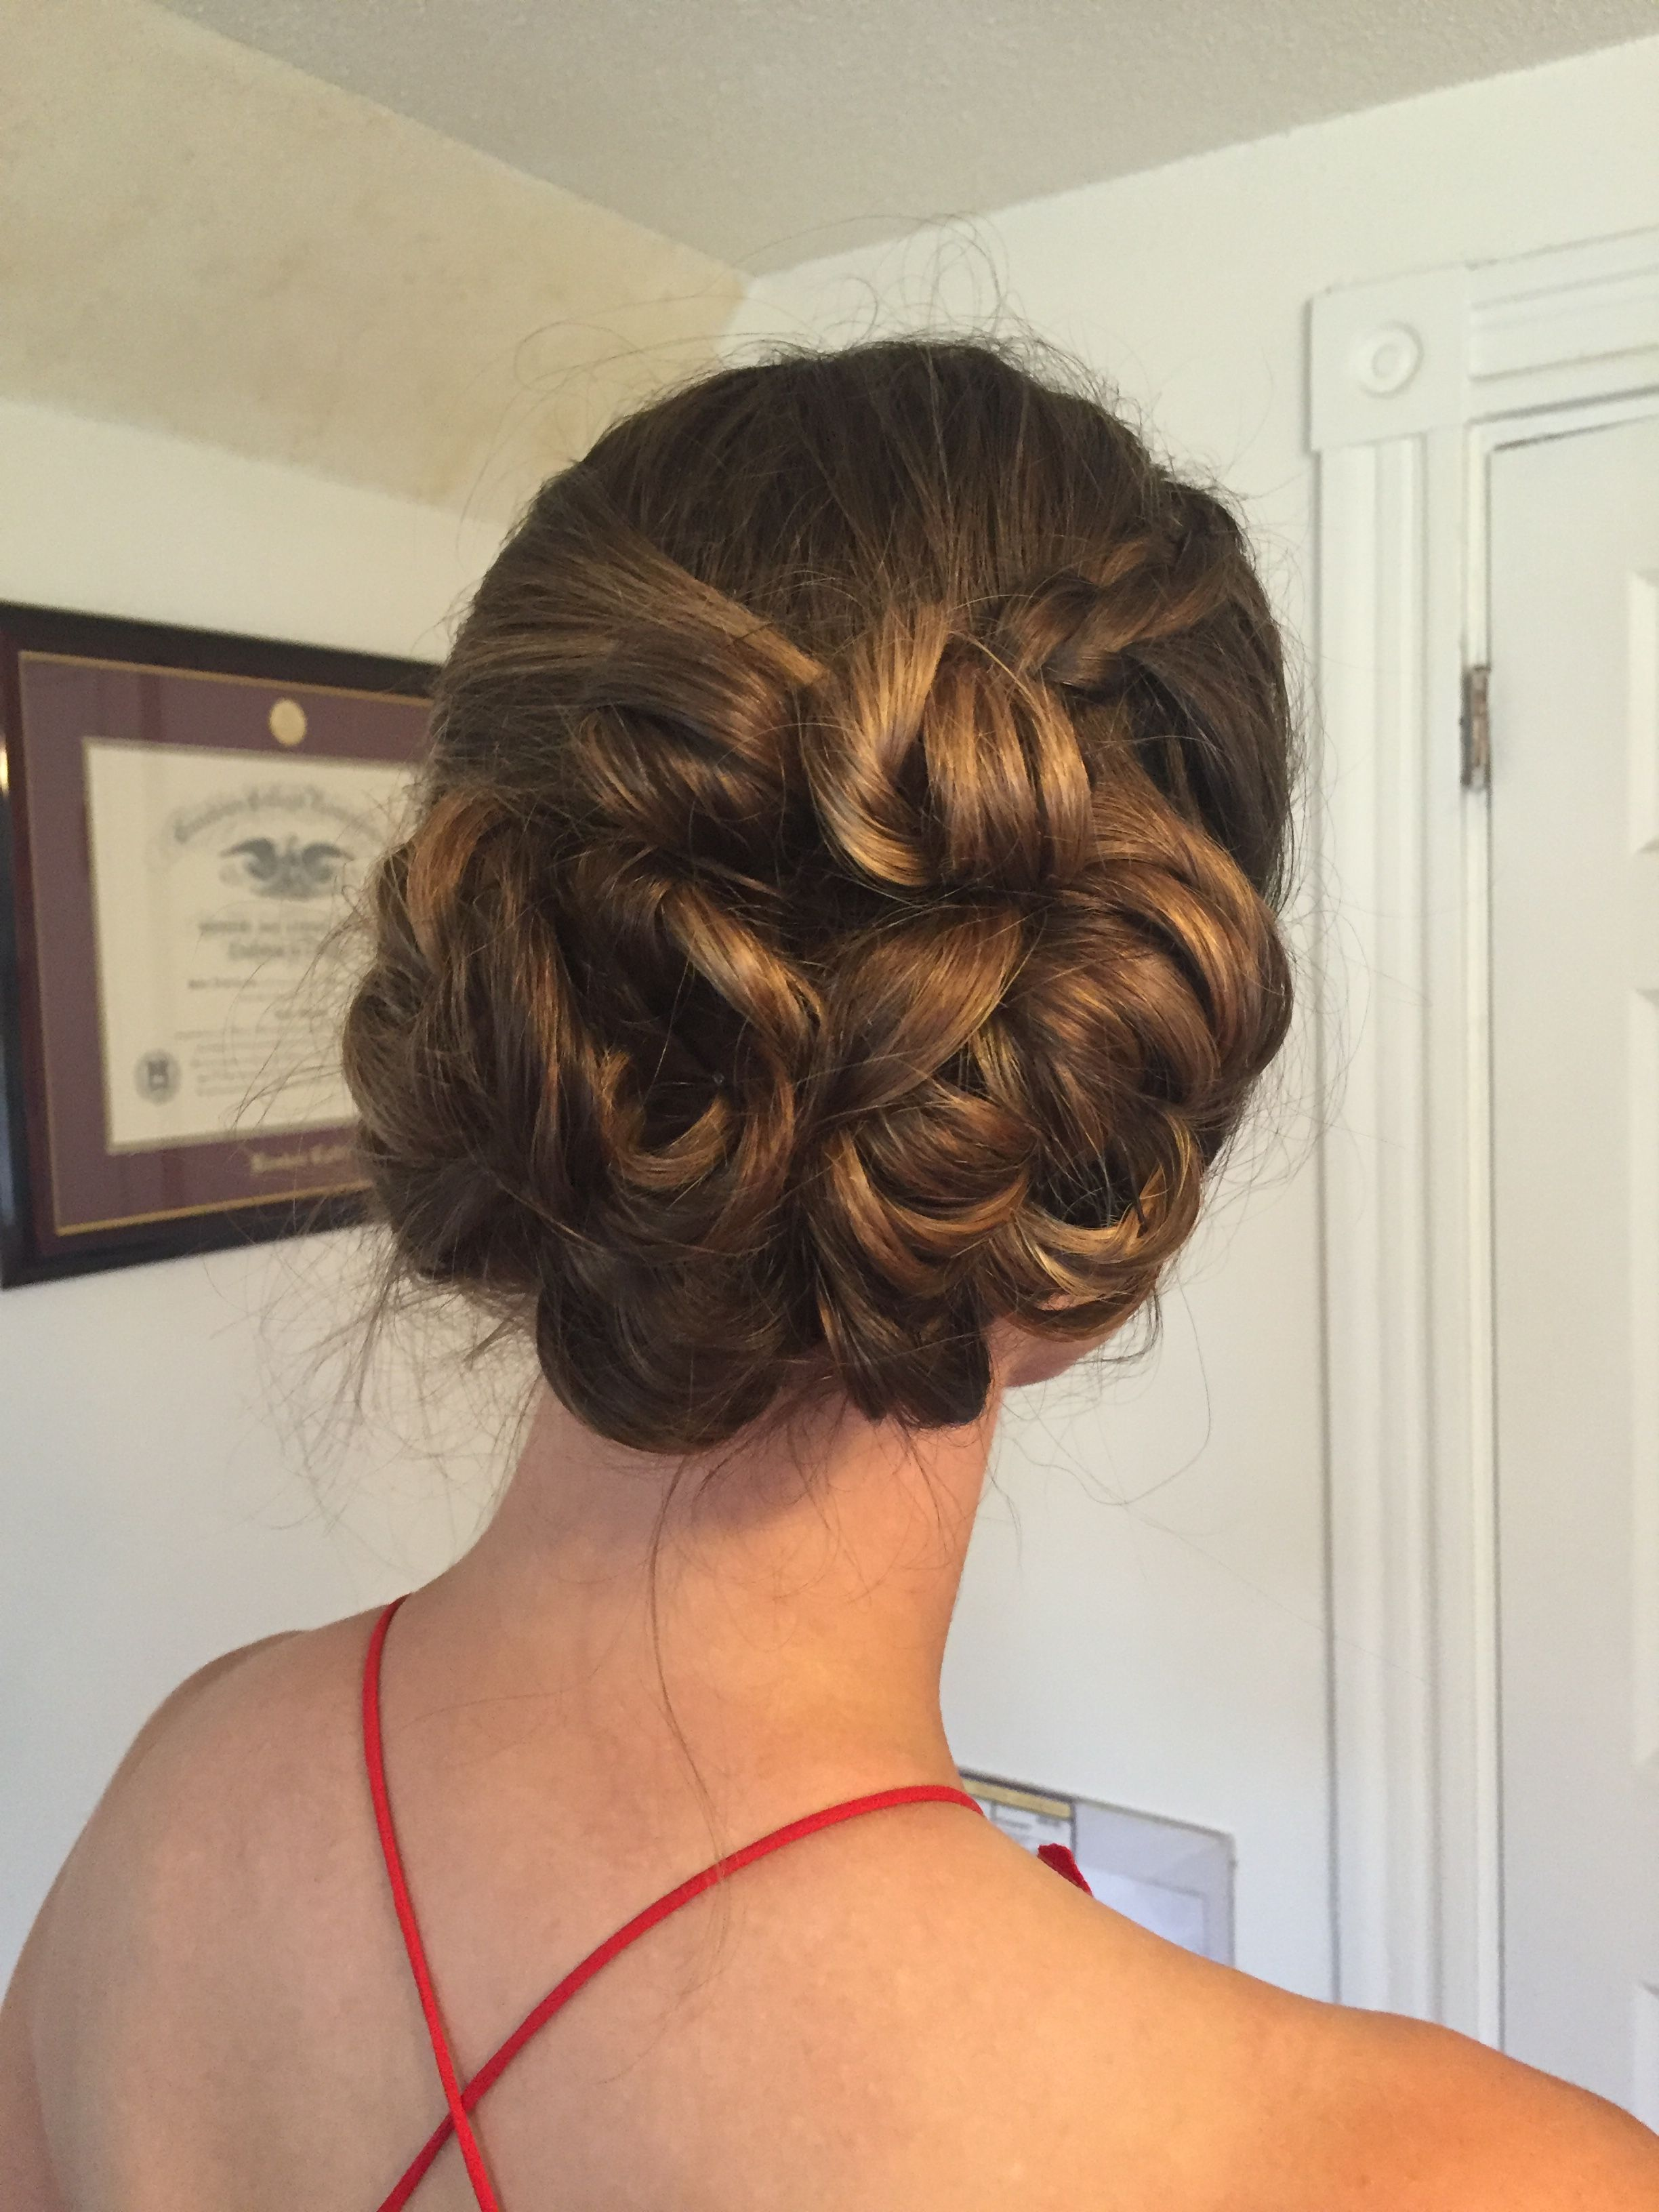 low side bun updo for wedding guest or bridesmaid hair with